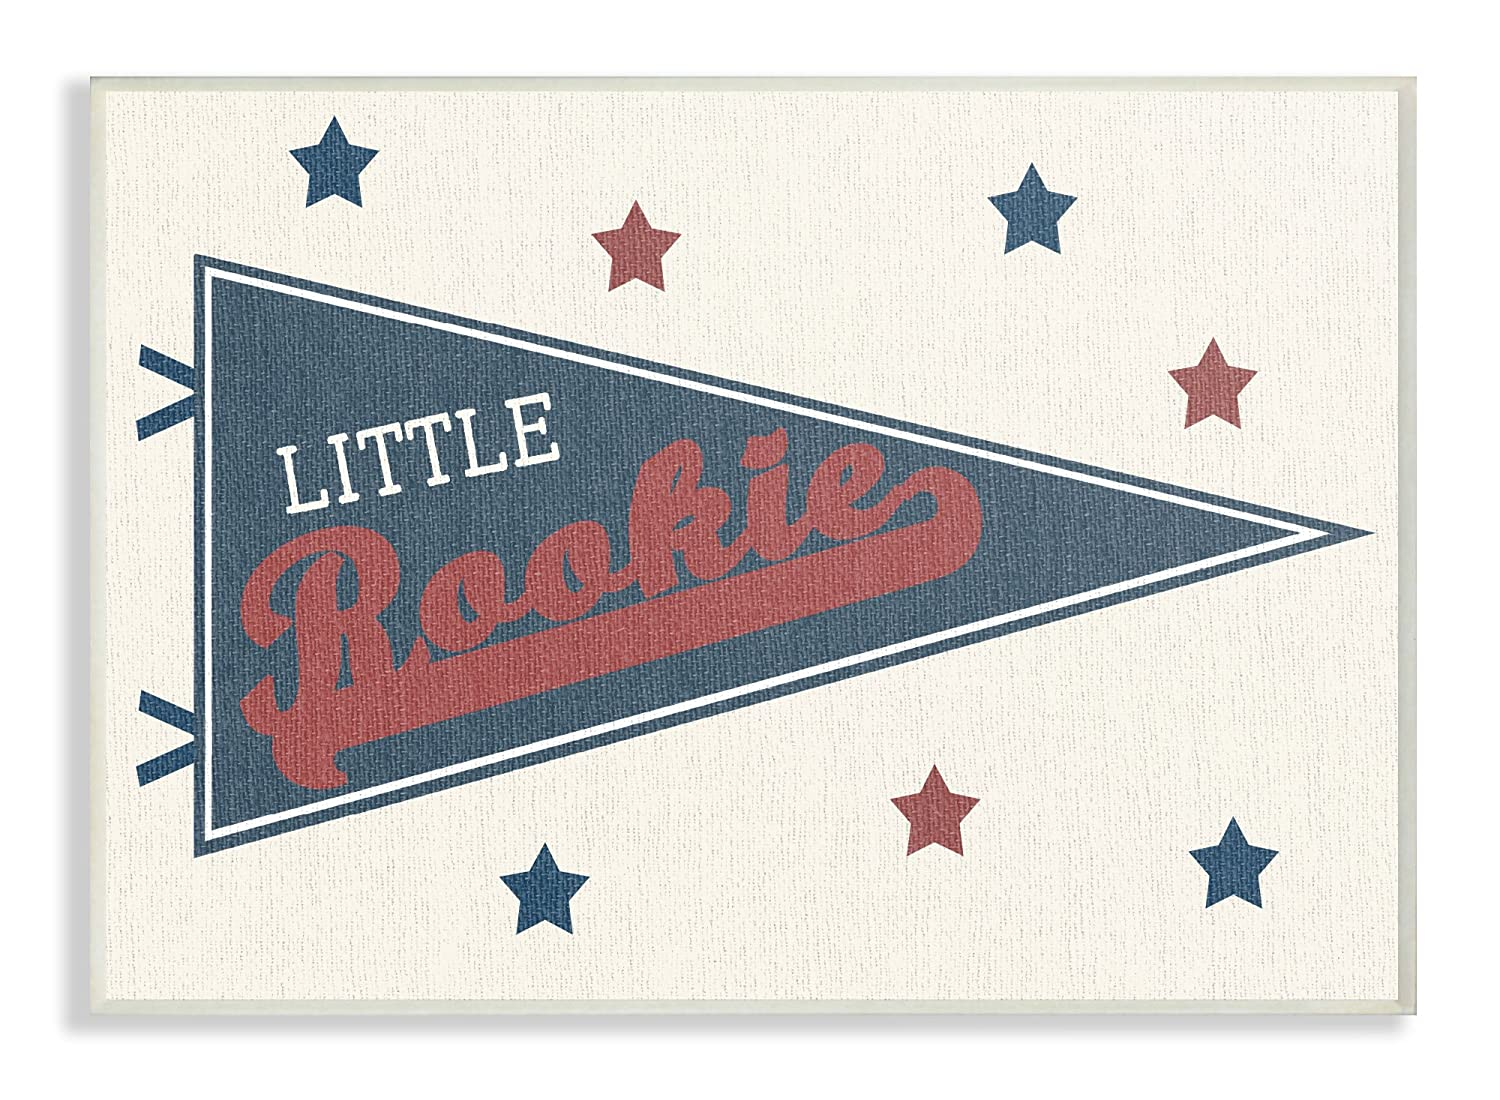 12.5 x 0.5 x 18.5 The Kids Room By Stupell Little Rookie Pennant Oversized Wall Plaque Art Proudly Made in USA Stupell Industries brp-2082/_wd/_13x19